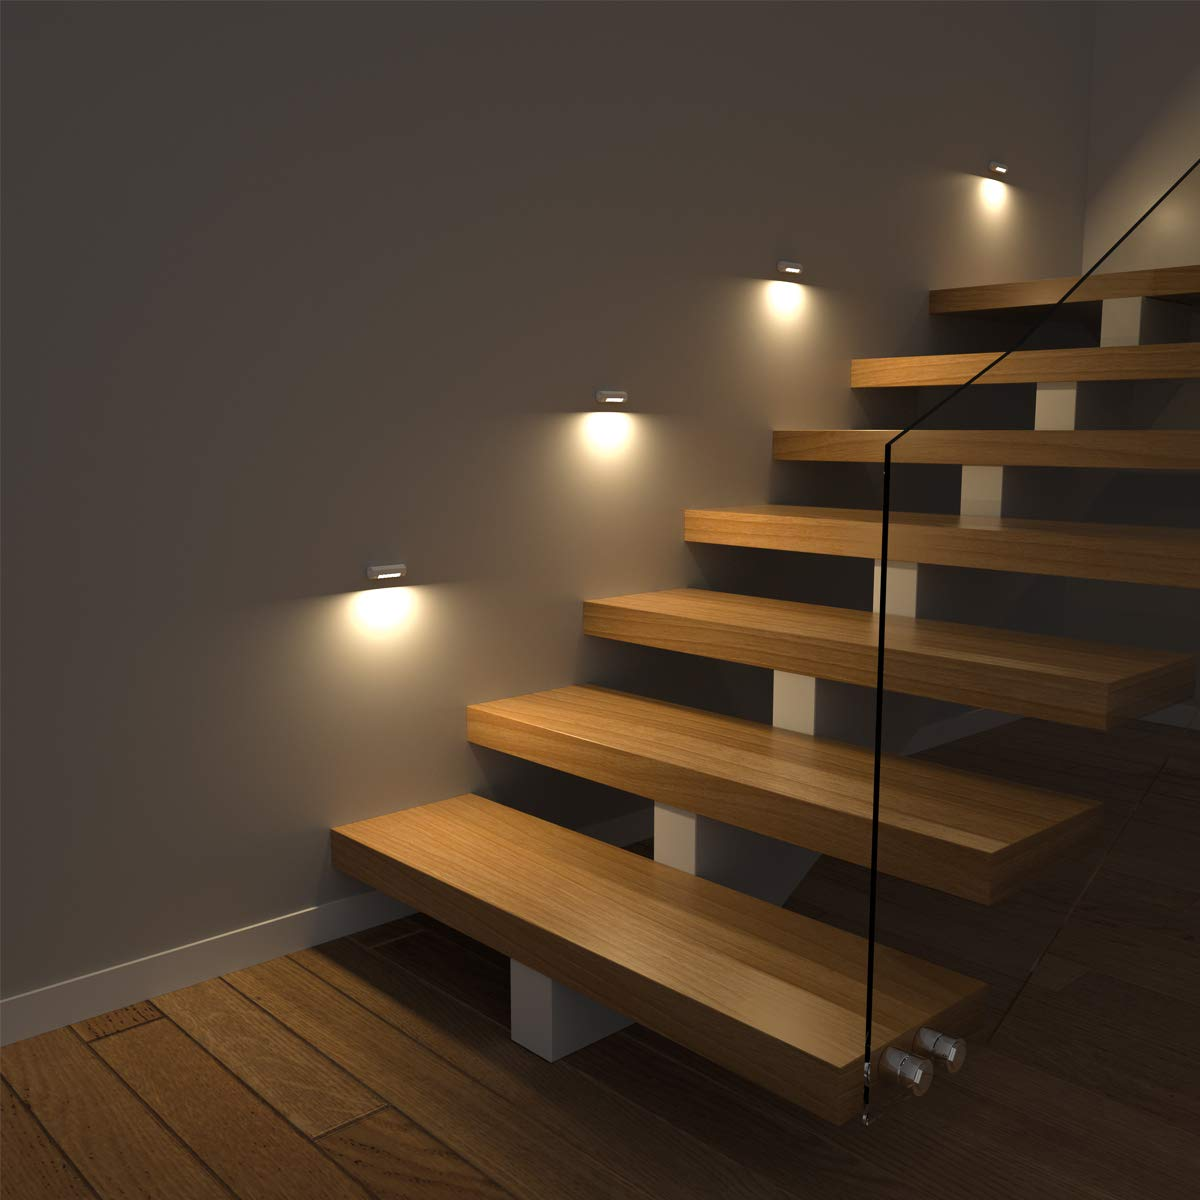 Morpilot 2pcs LED Stair Night Light/Cupboard Light with Motion Sensor, AA Battery Operated/Dual PIR Sensor/Low Battery Warning/3 Fixed Method/Octagonal Rotatable Design, Warm White Indoors Night Light